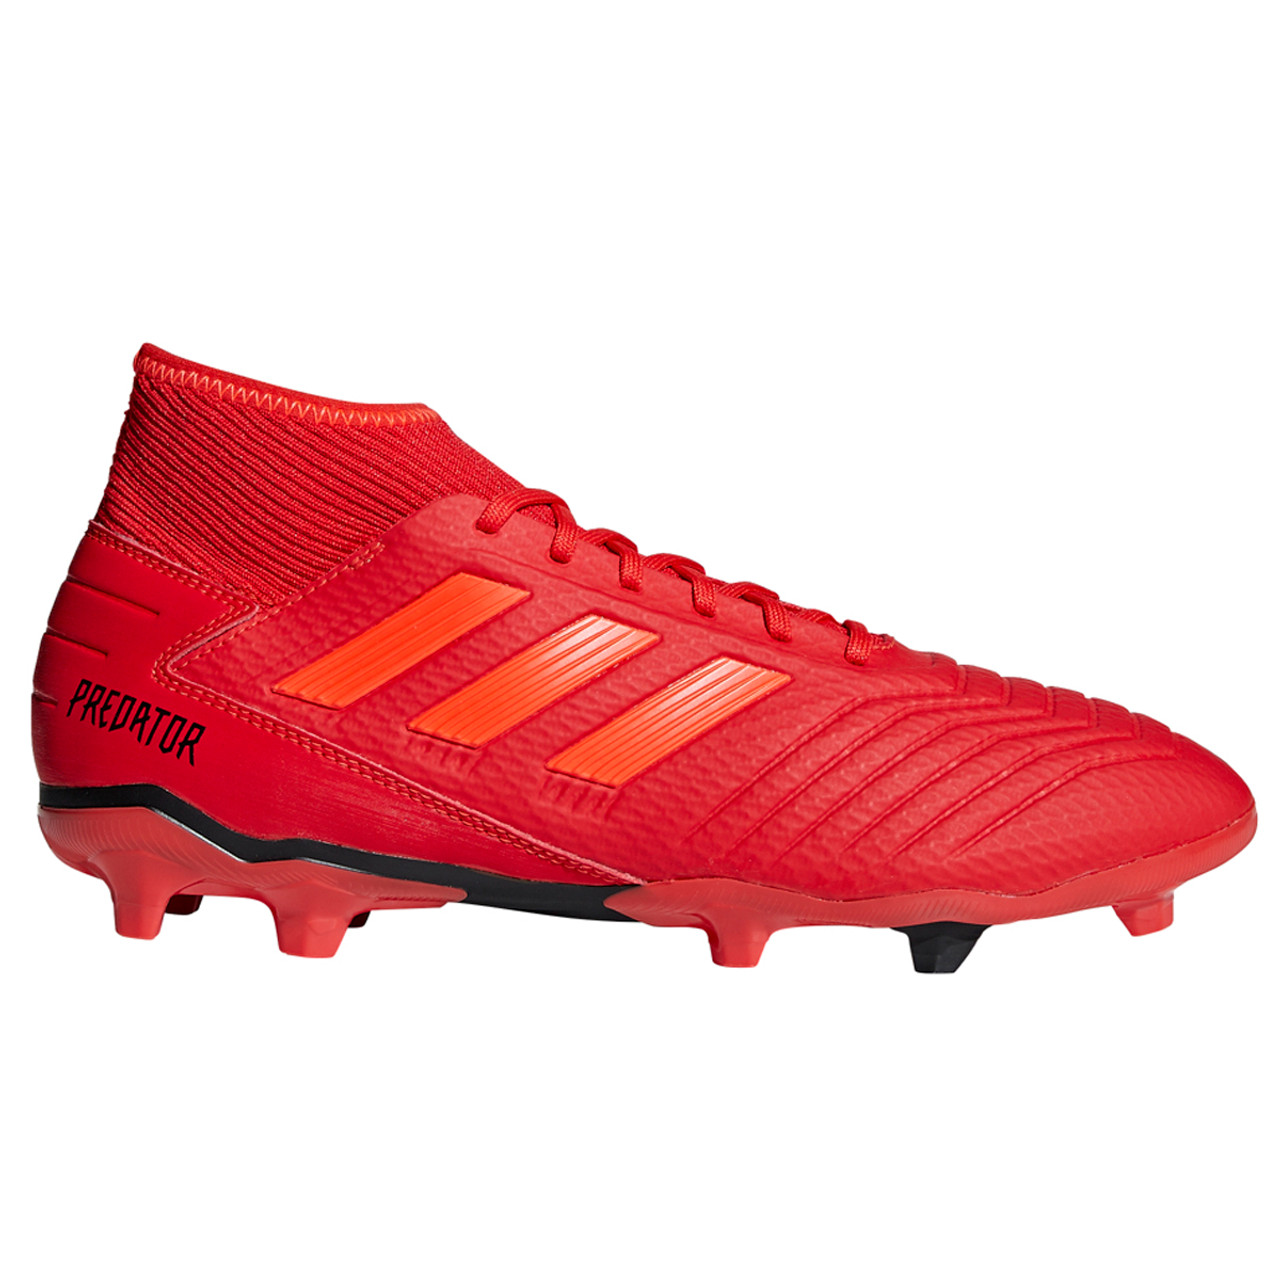 7f2fd0f56 Adidas Predator 19.3 FG Men s Soccer Cleats BB9334 - Red ...